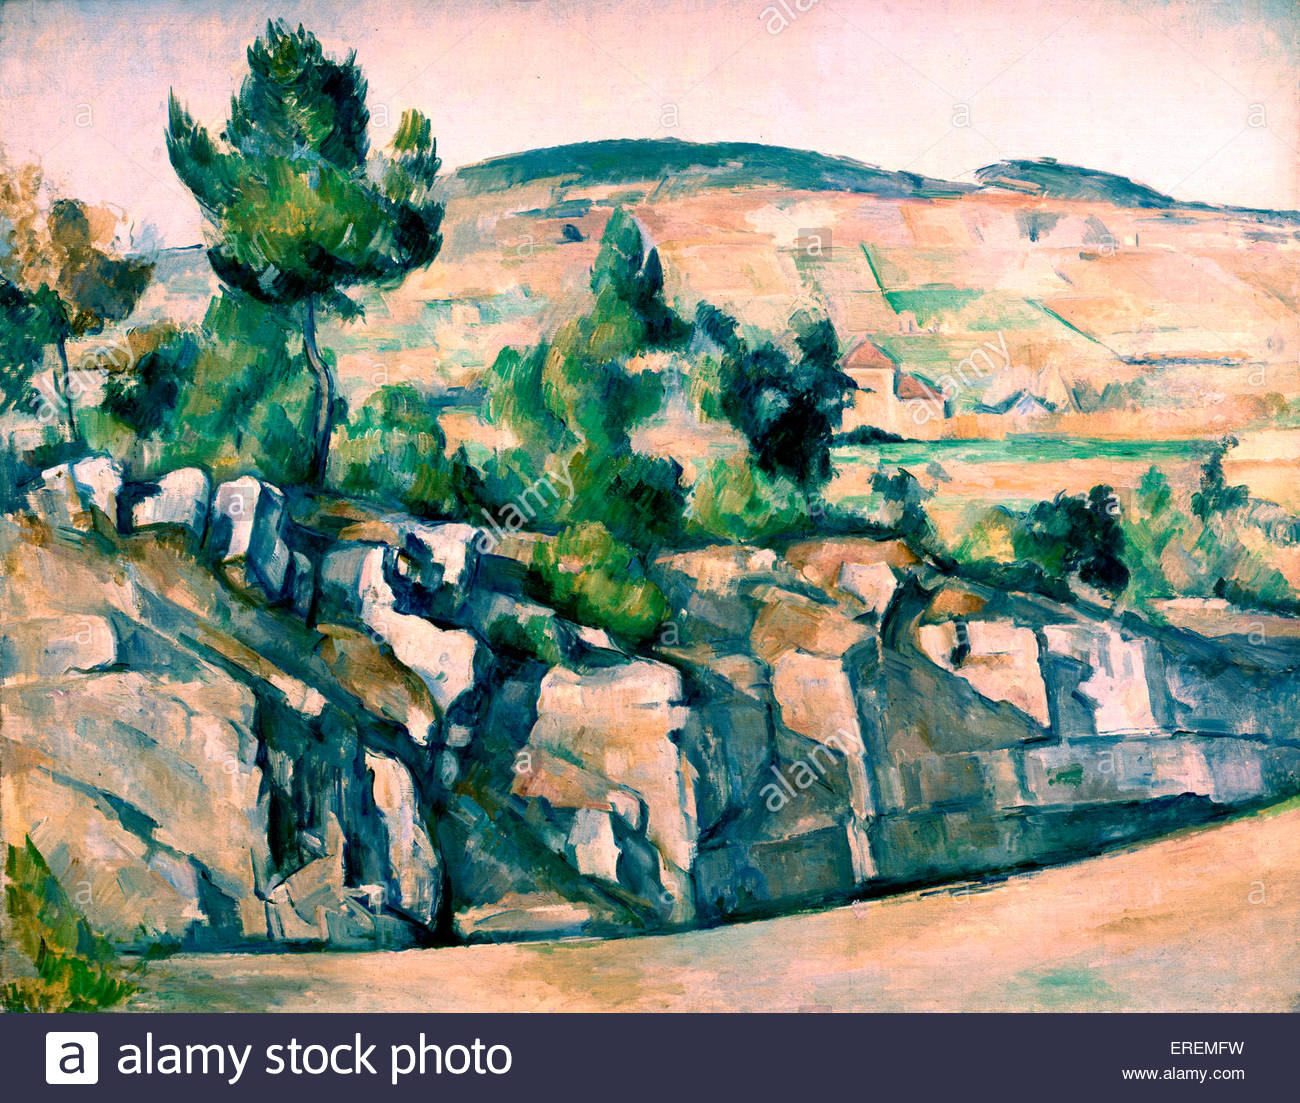 Hillside in Provence (' Aix. Paysage Rocheux')  by Paul Cézanne, 1890- 92. Related to landscapes Cézanne - Stock Image